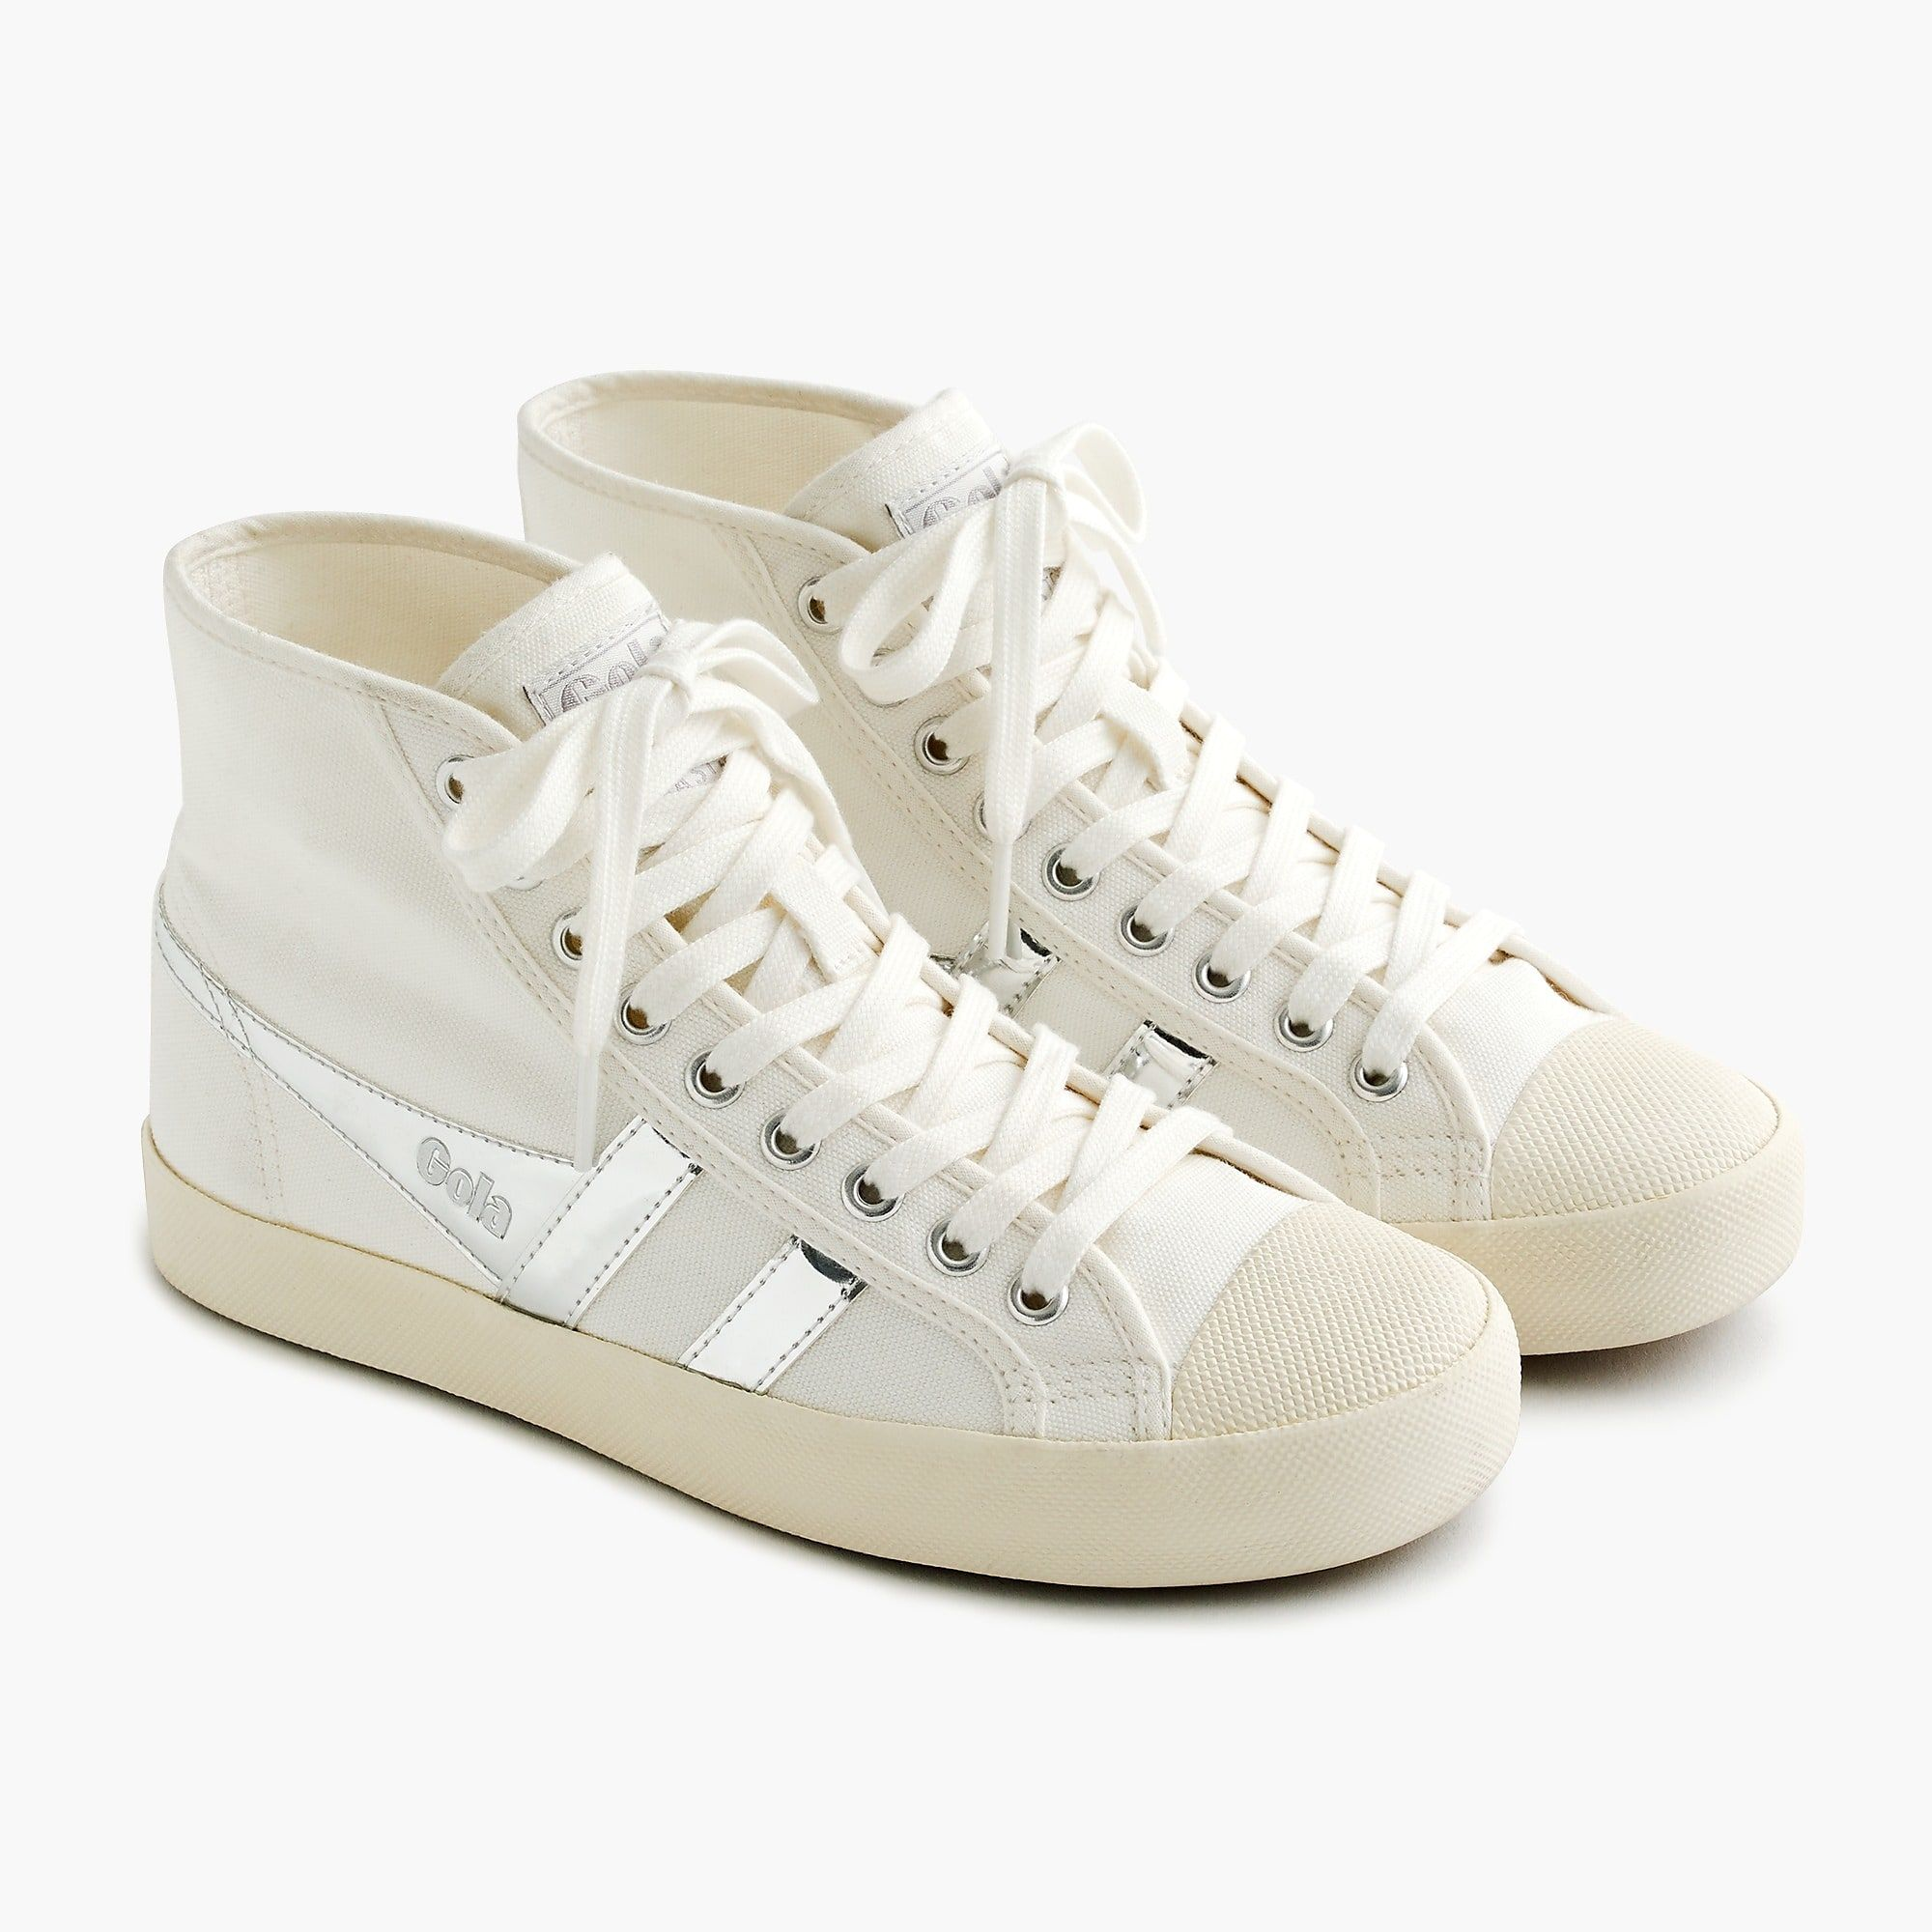 38b2f2dc3ea Shop the Women s Gola® For J.Crew Coaster High-Top Sneaker at J.Crew and  see the entire selection of Women s Sneakers. Free Shipping Available.